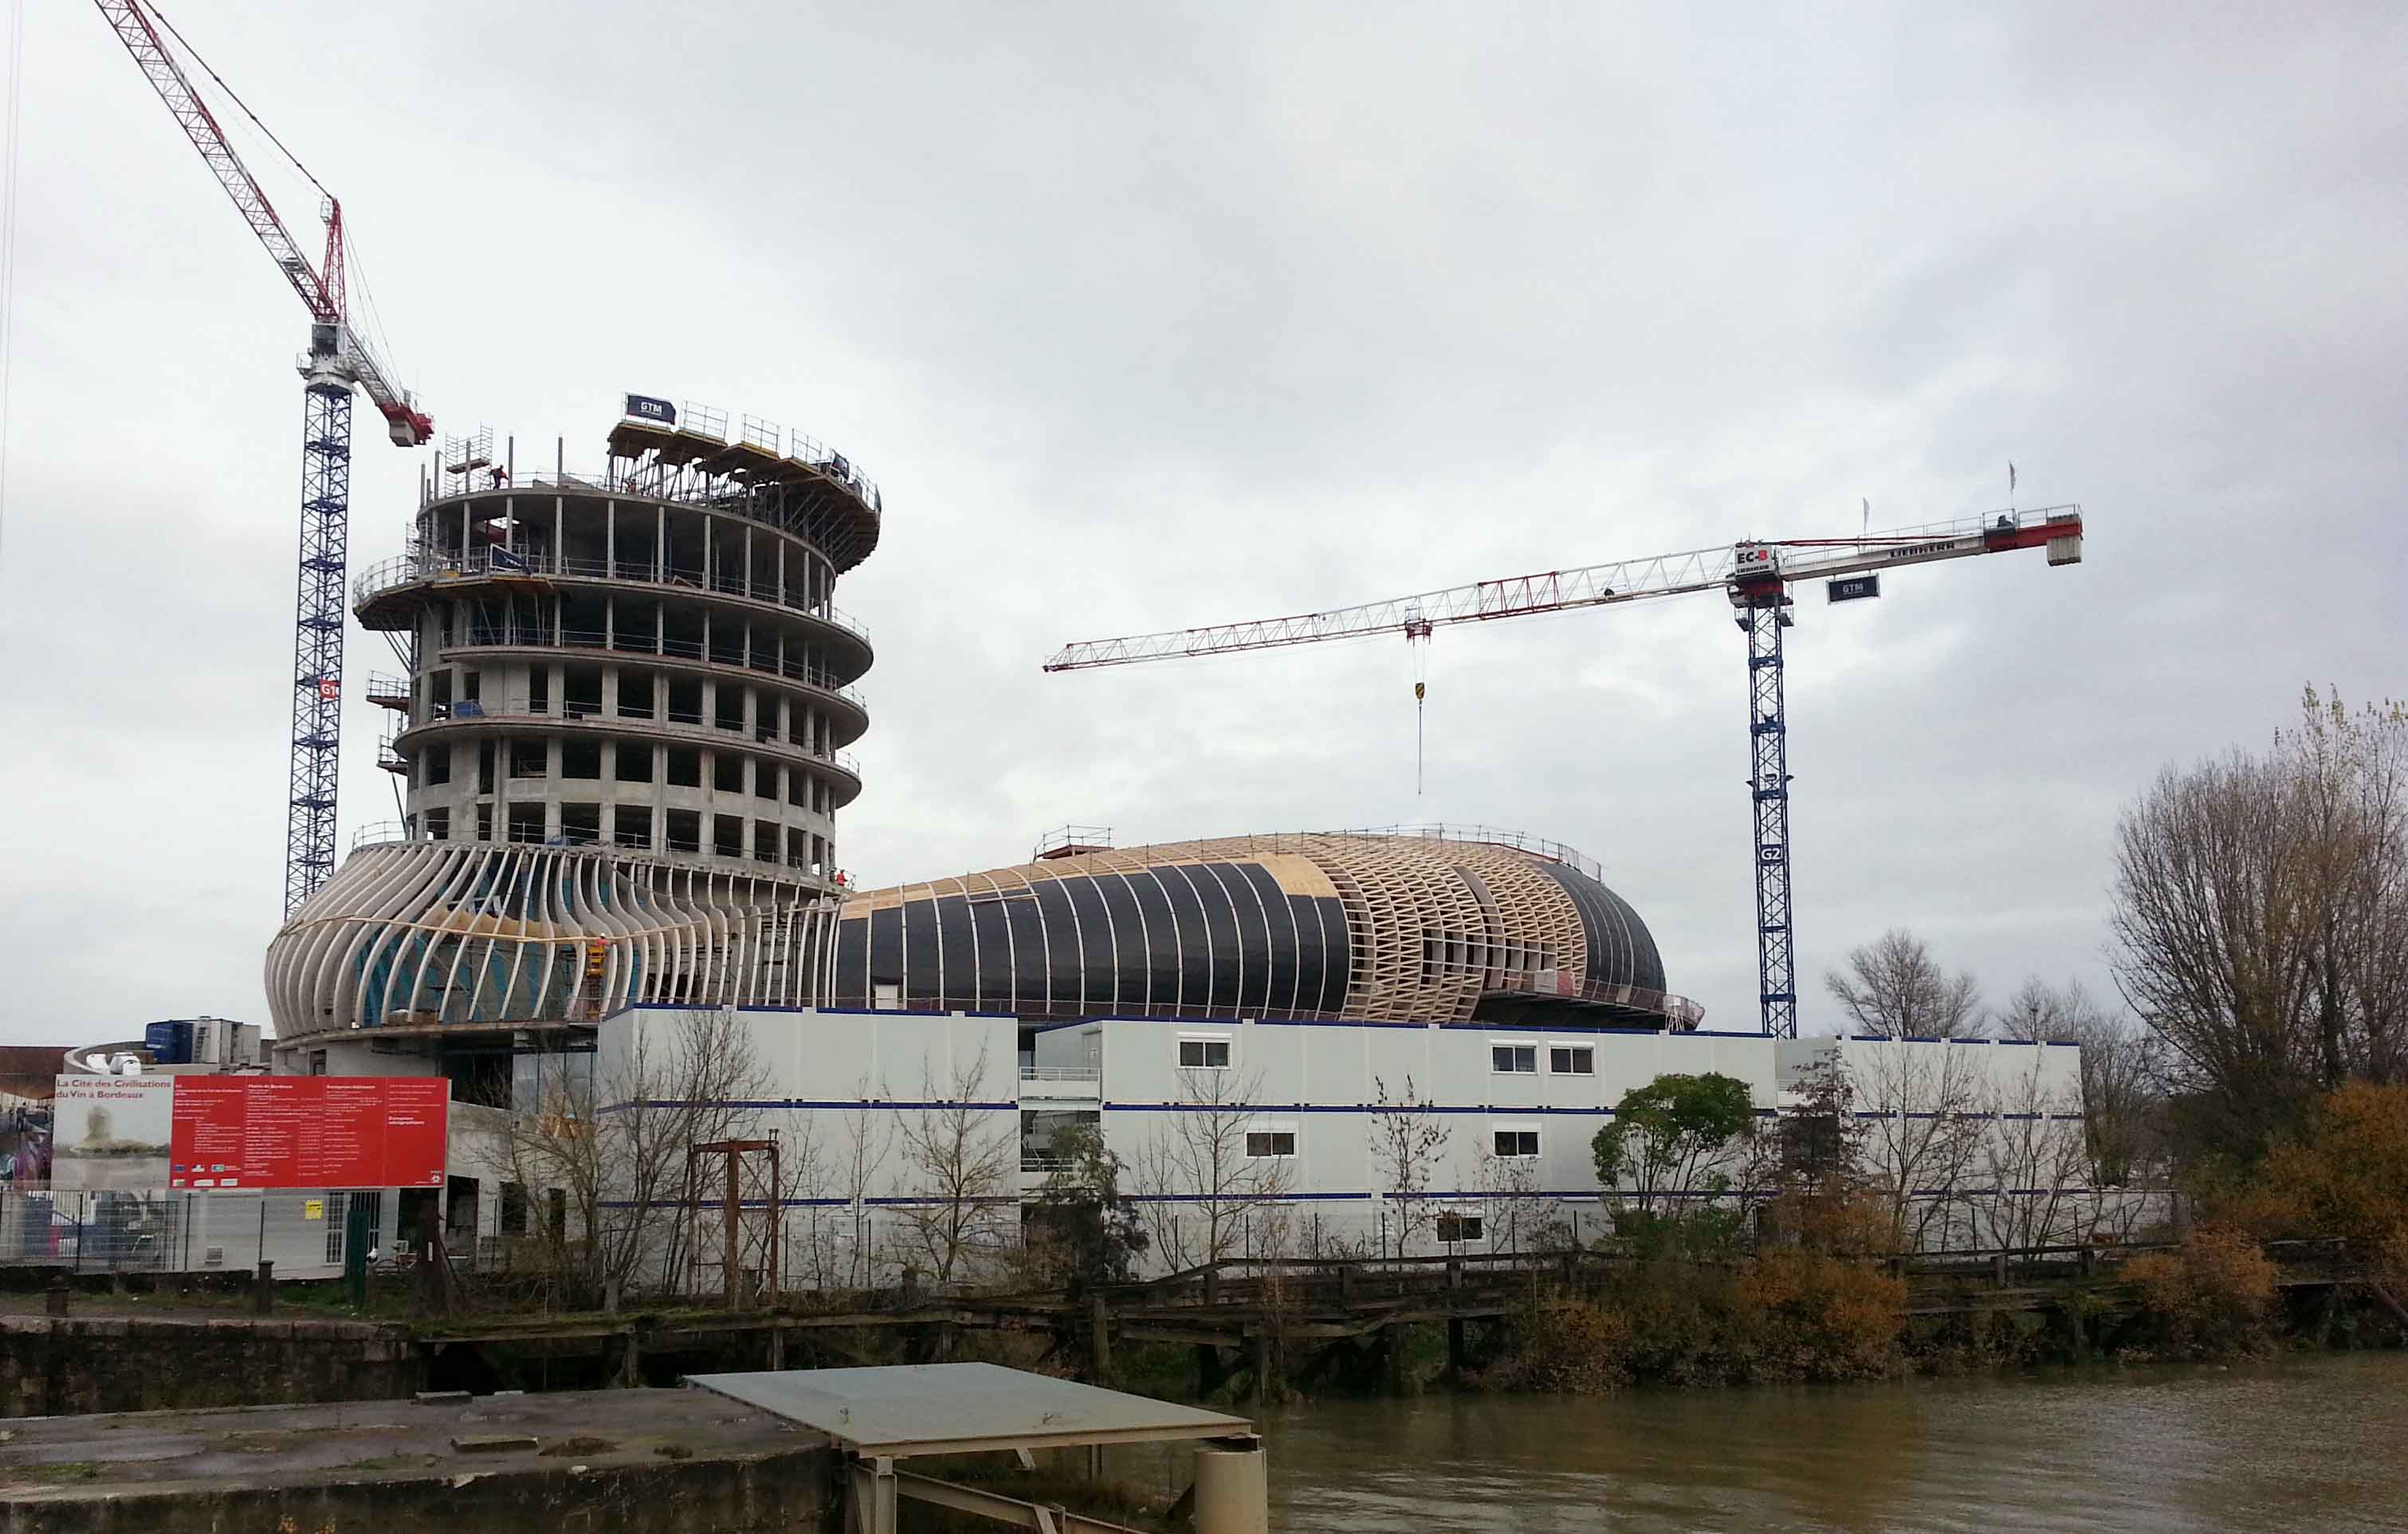 cite du vin construction 3a